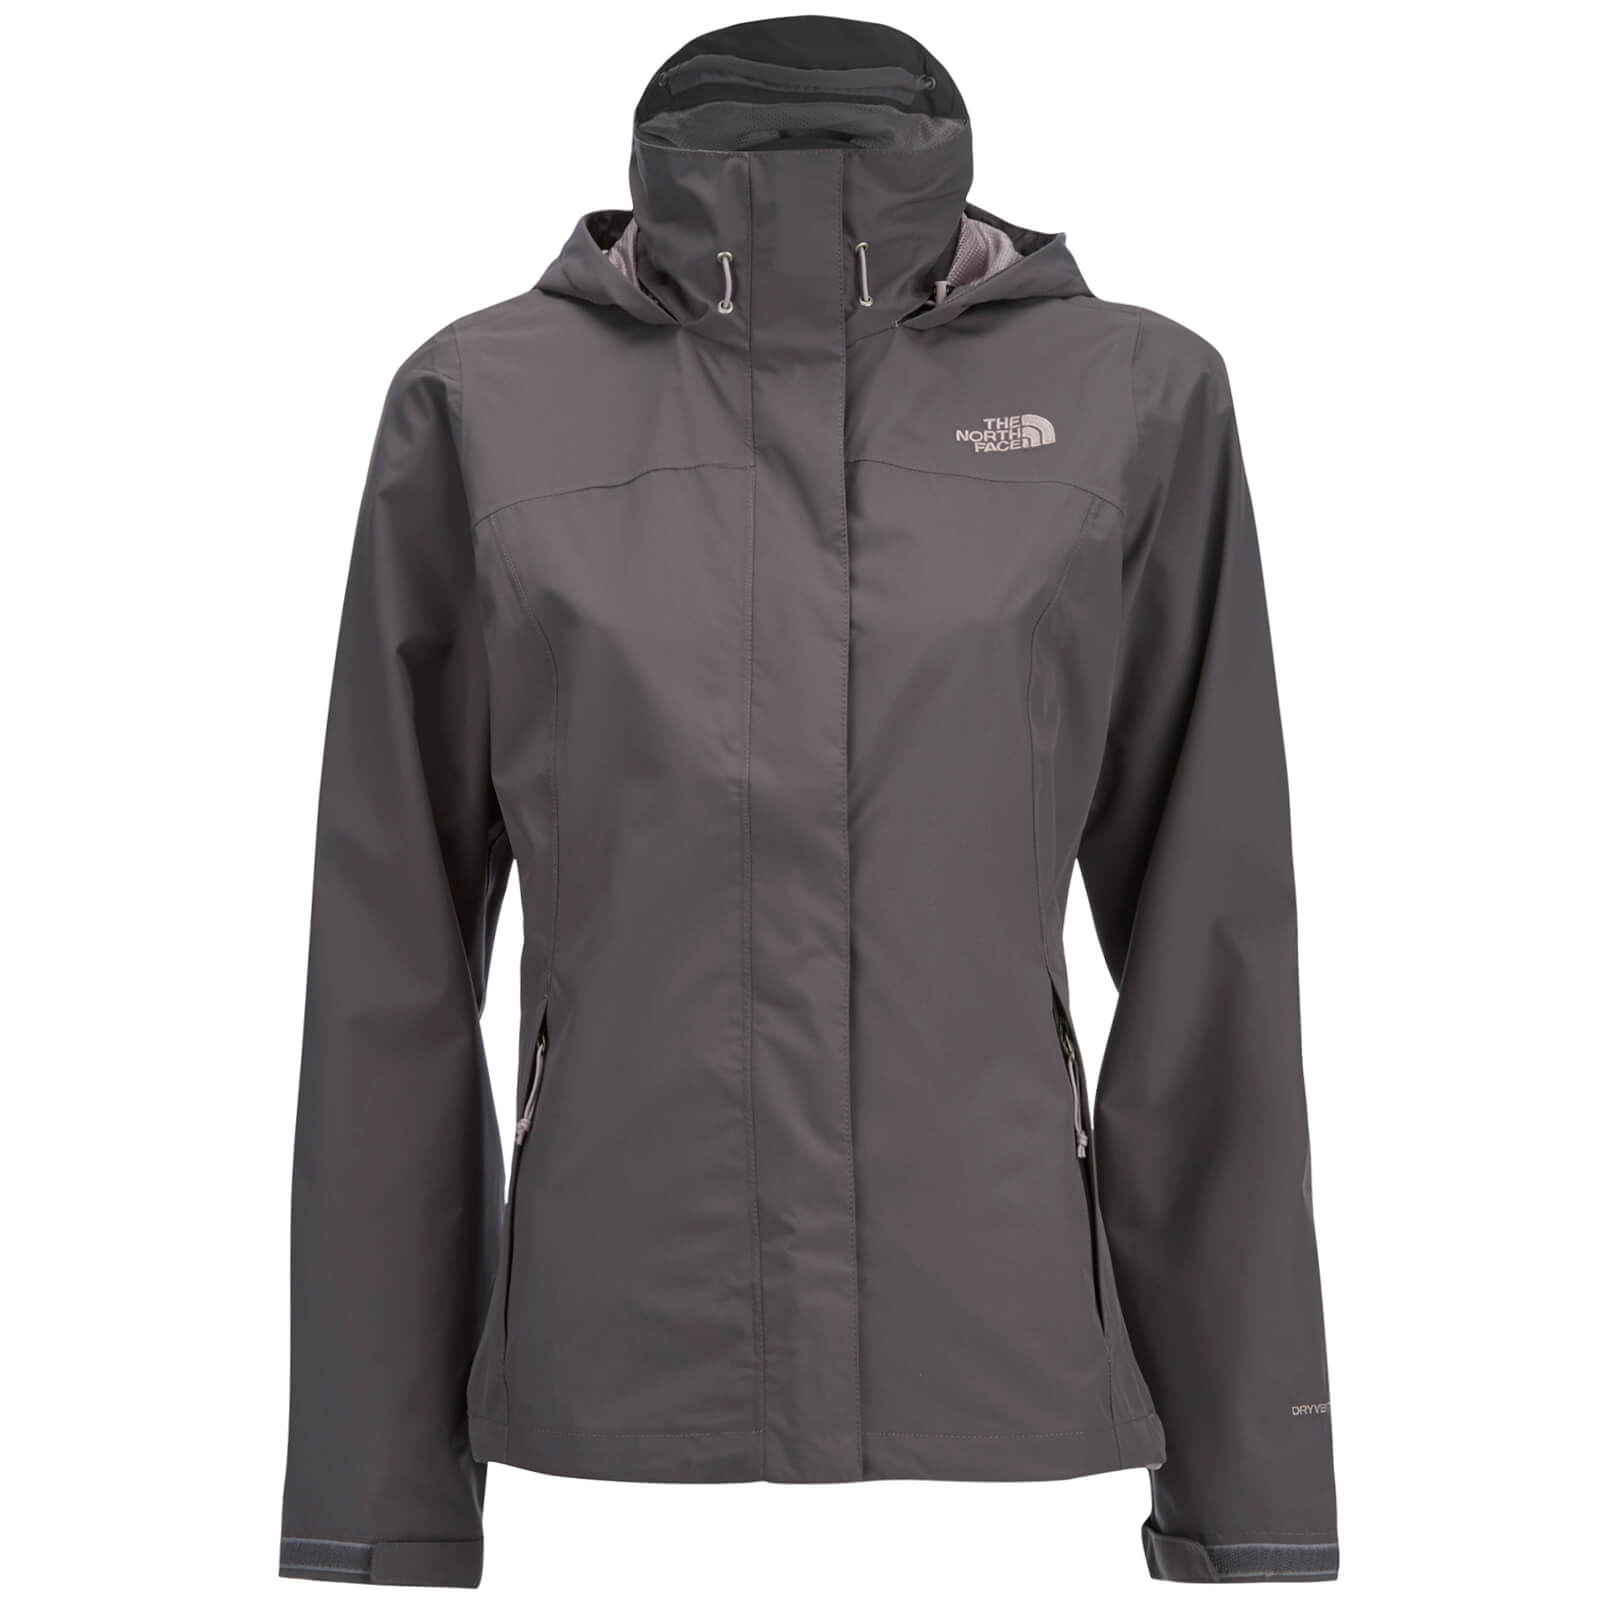 becc15a110db The North Face Women s Sangro Jacket - Rabbit Grey Clothing